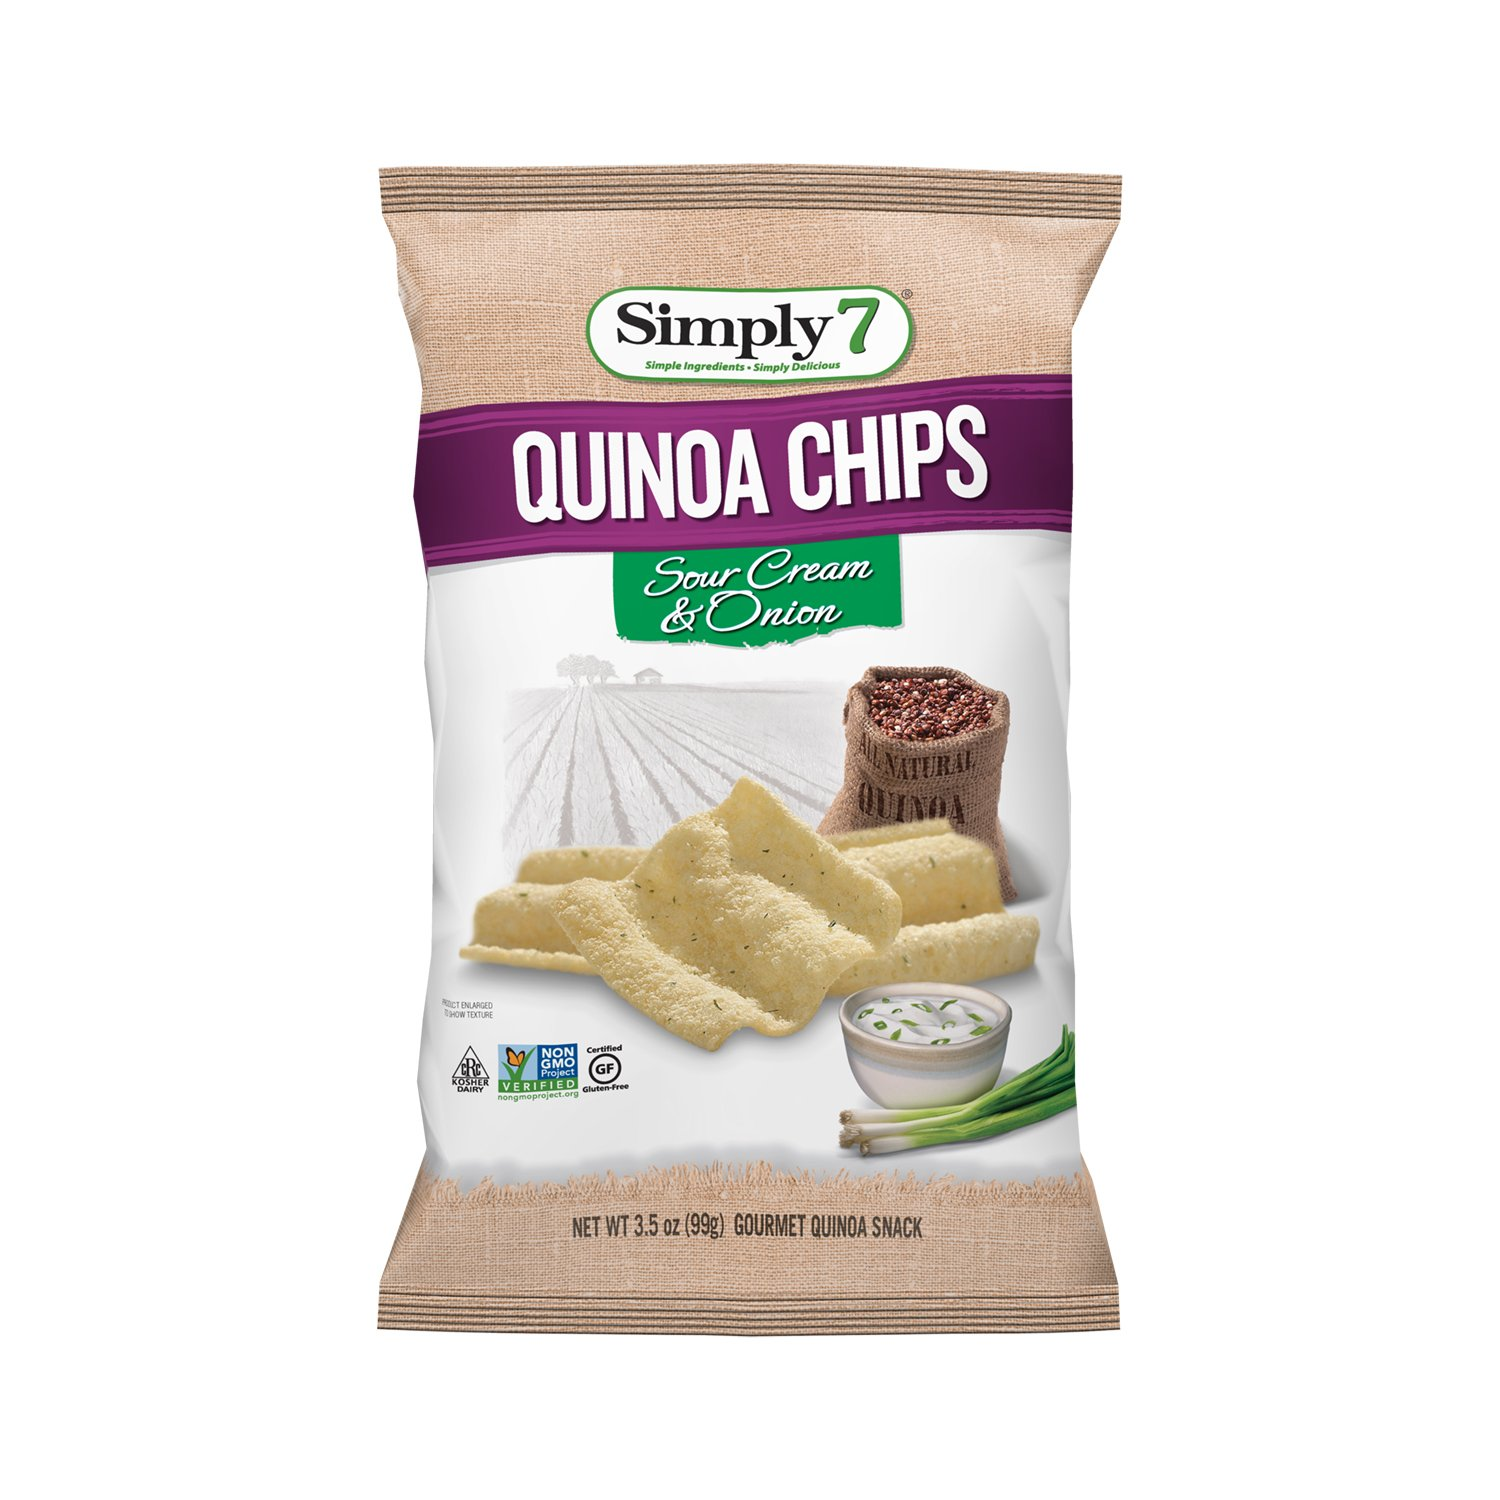 Simply7 Quinoa Chips, Sour Cream & Onion, 3.5-ounce bags (Pack of 12)